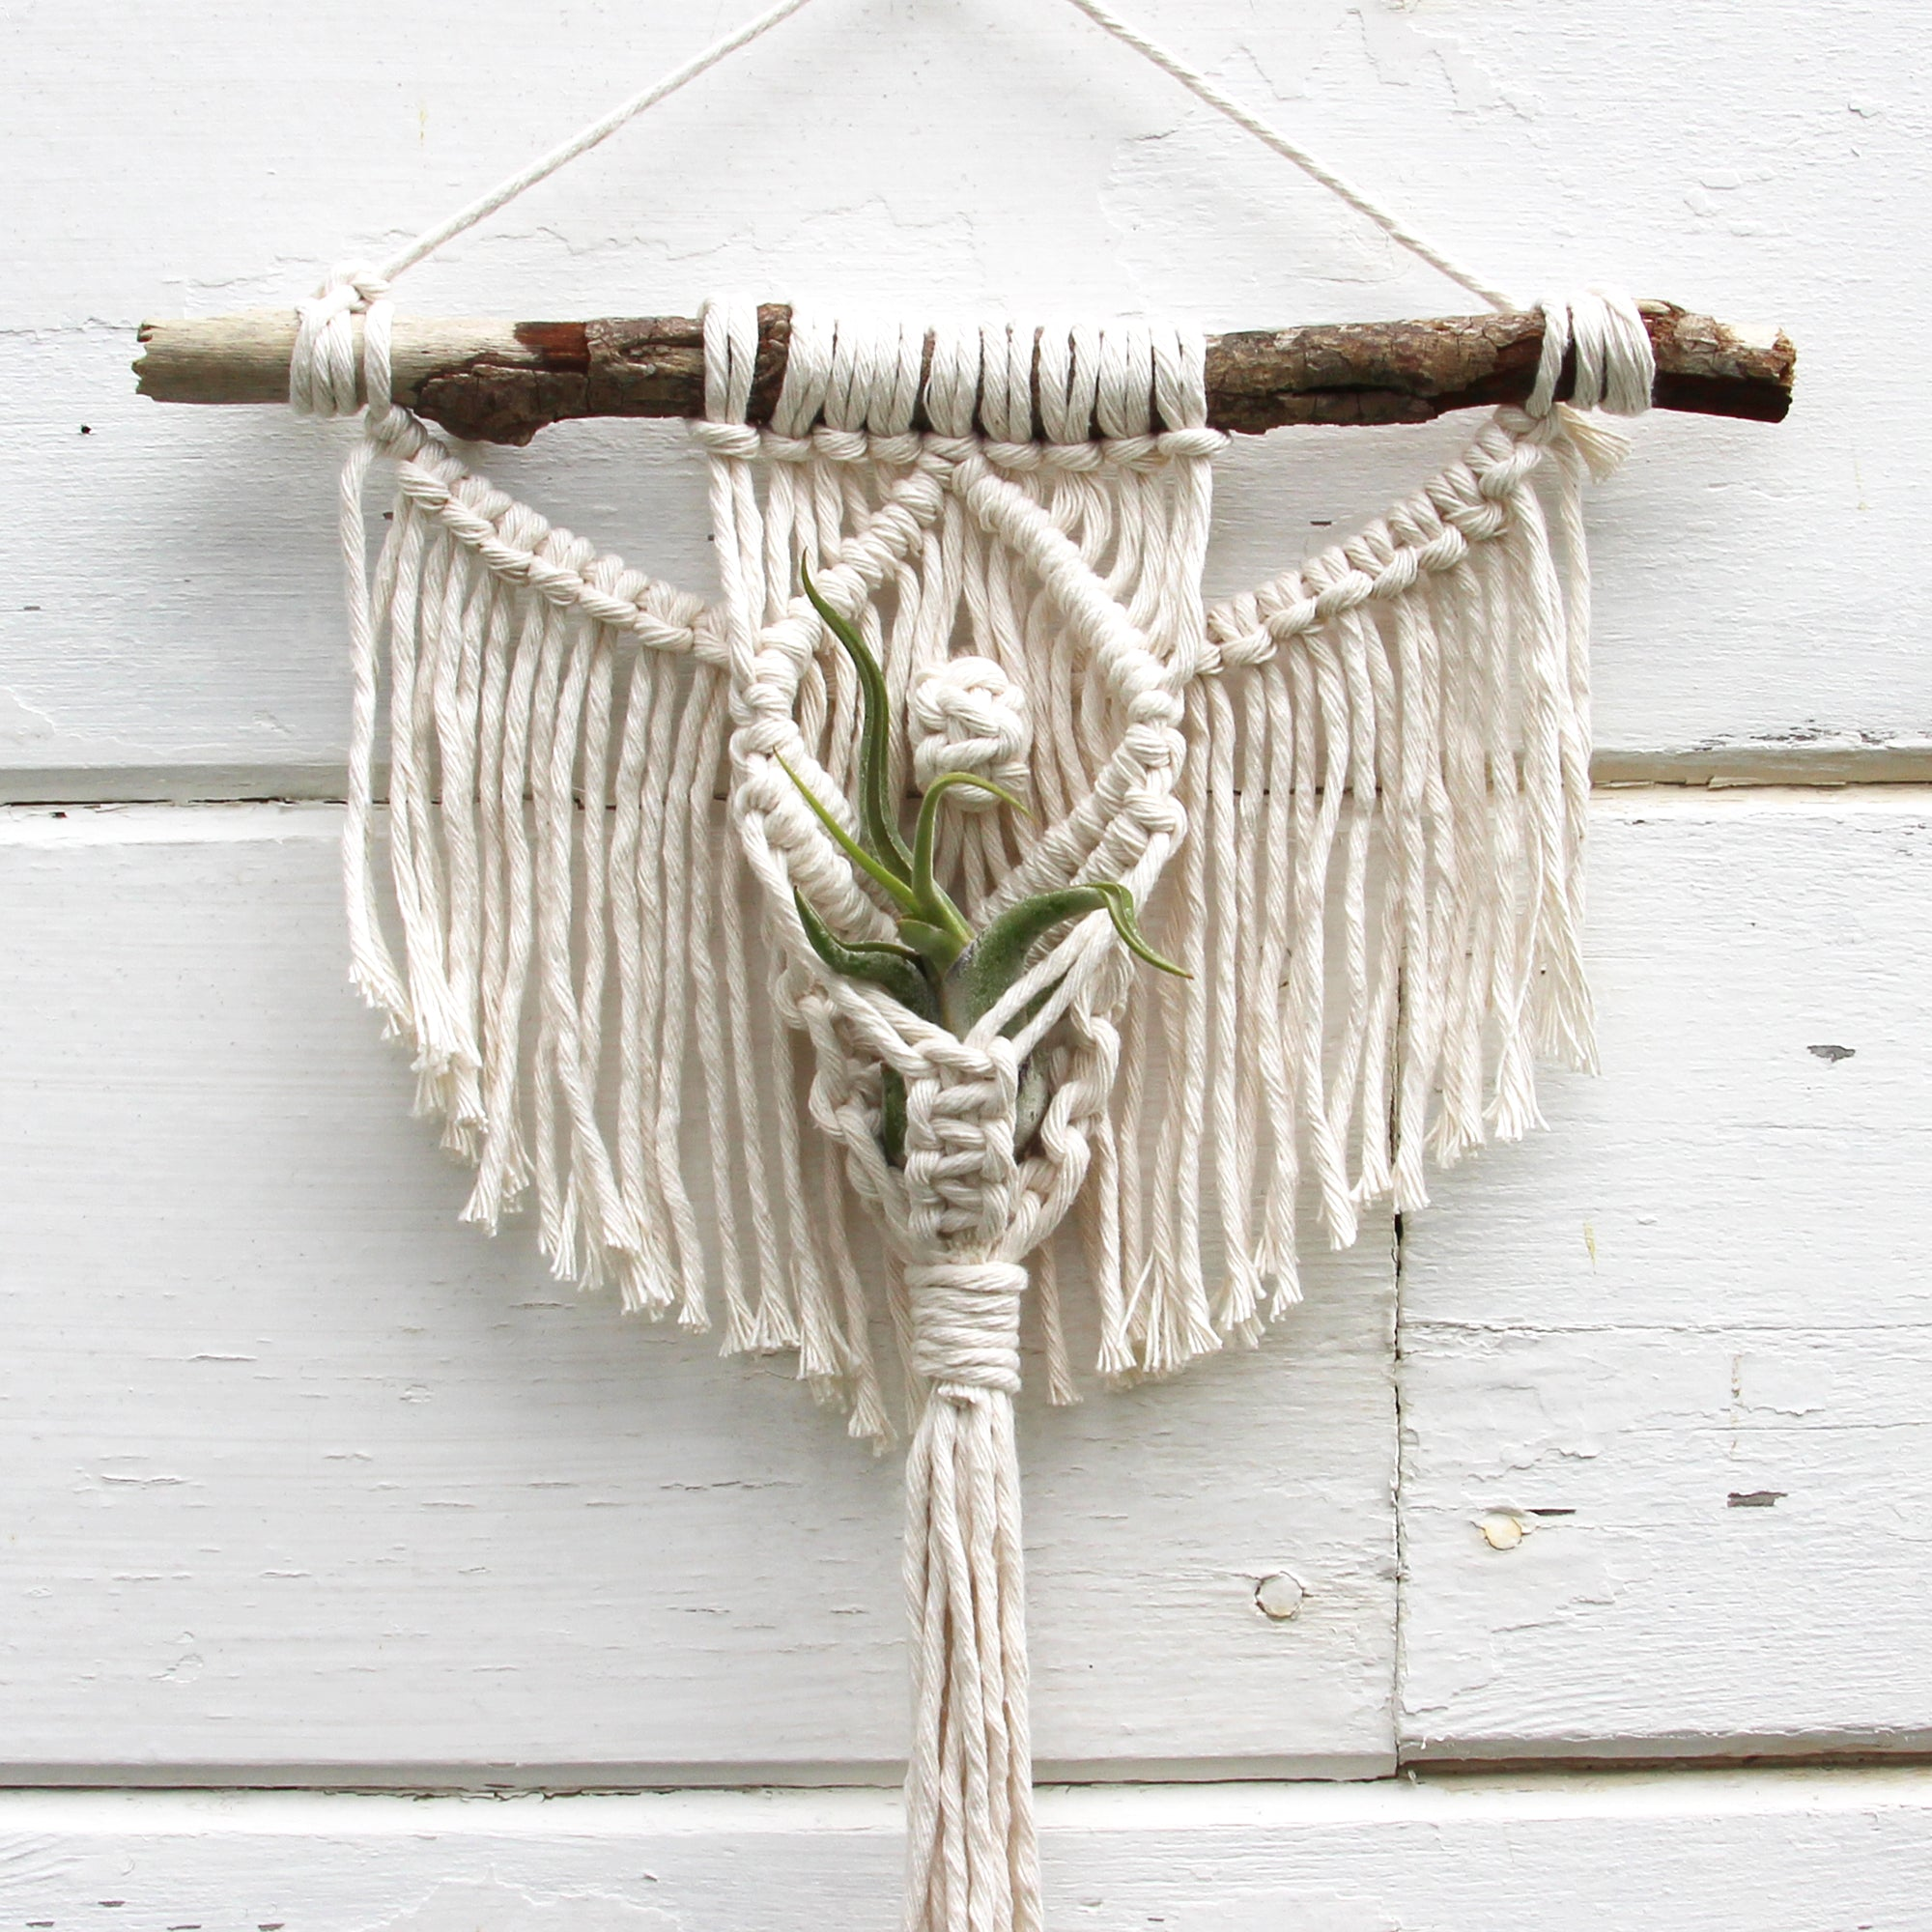 Macrame Air Plant Holder - Angel with an Eye - White - Bohemian Home Decor Wall Hanging